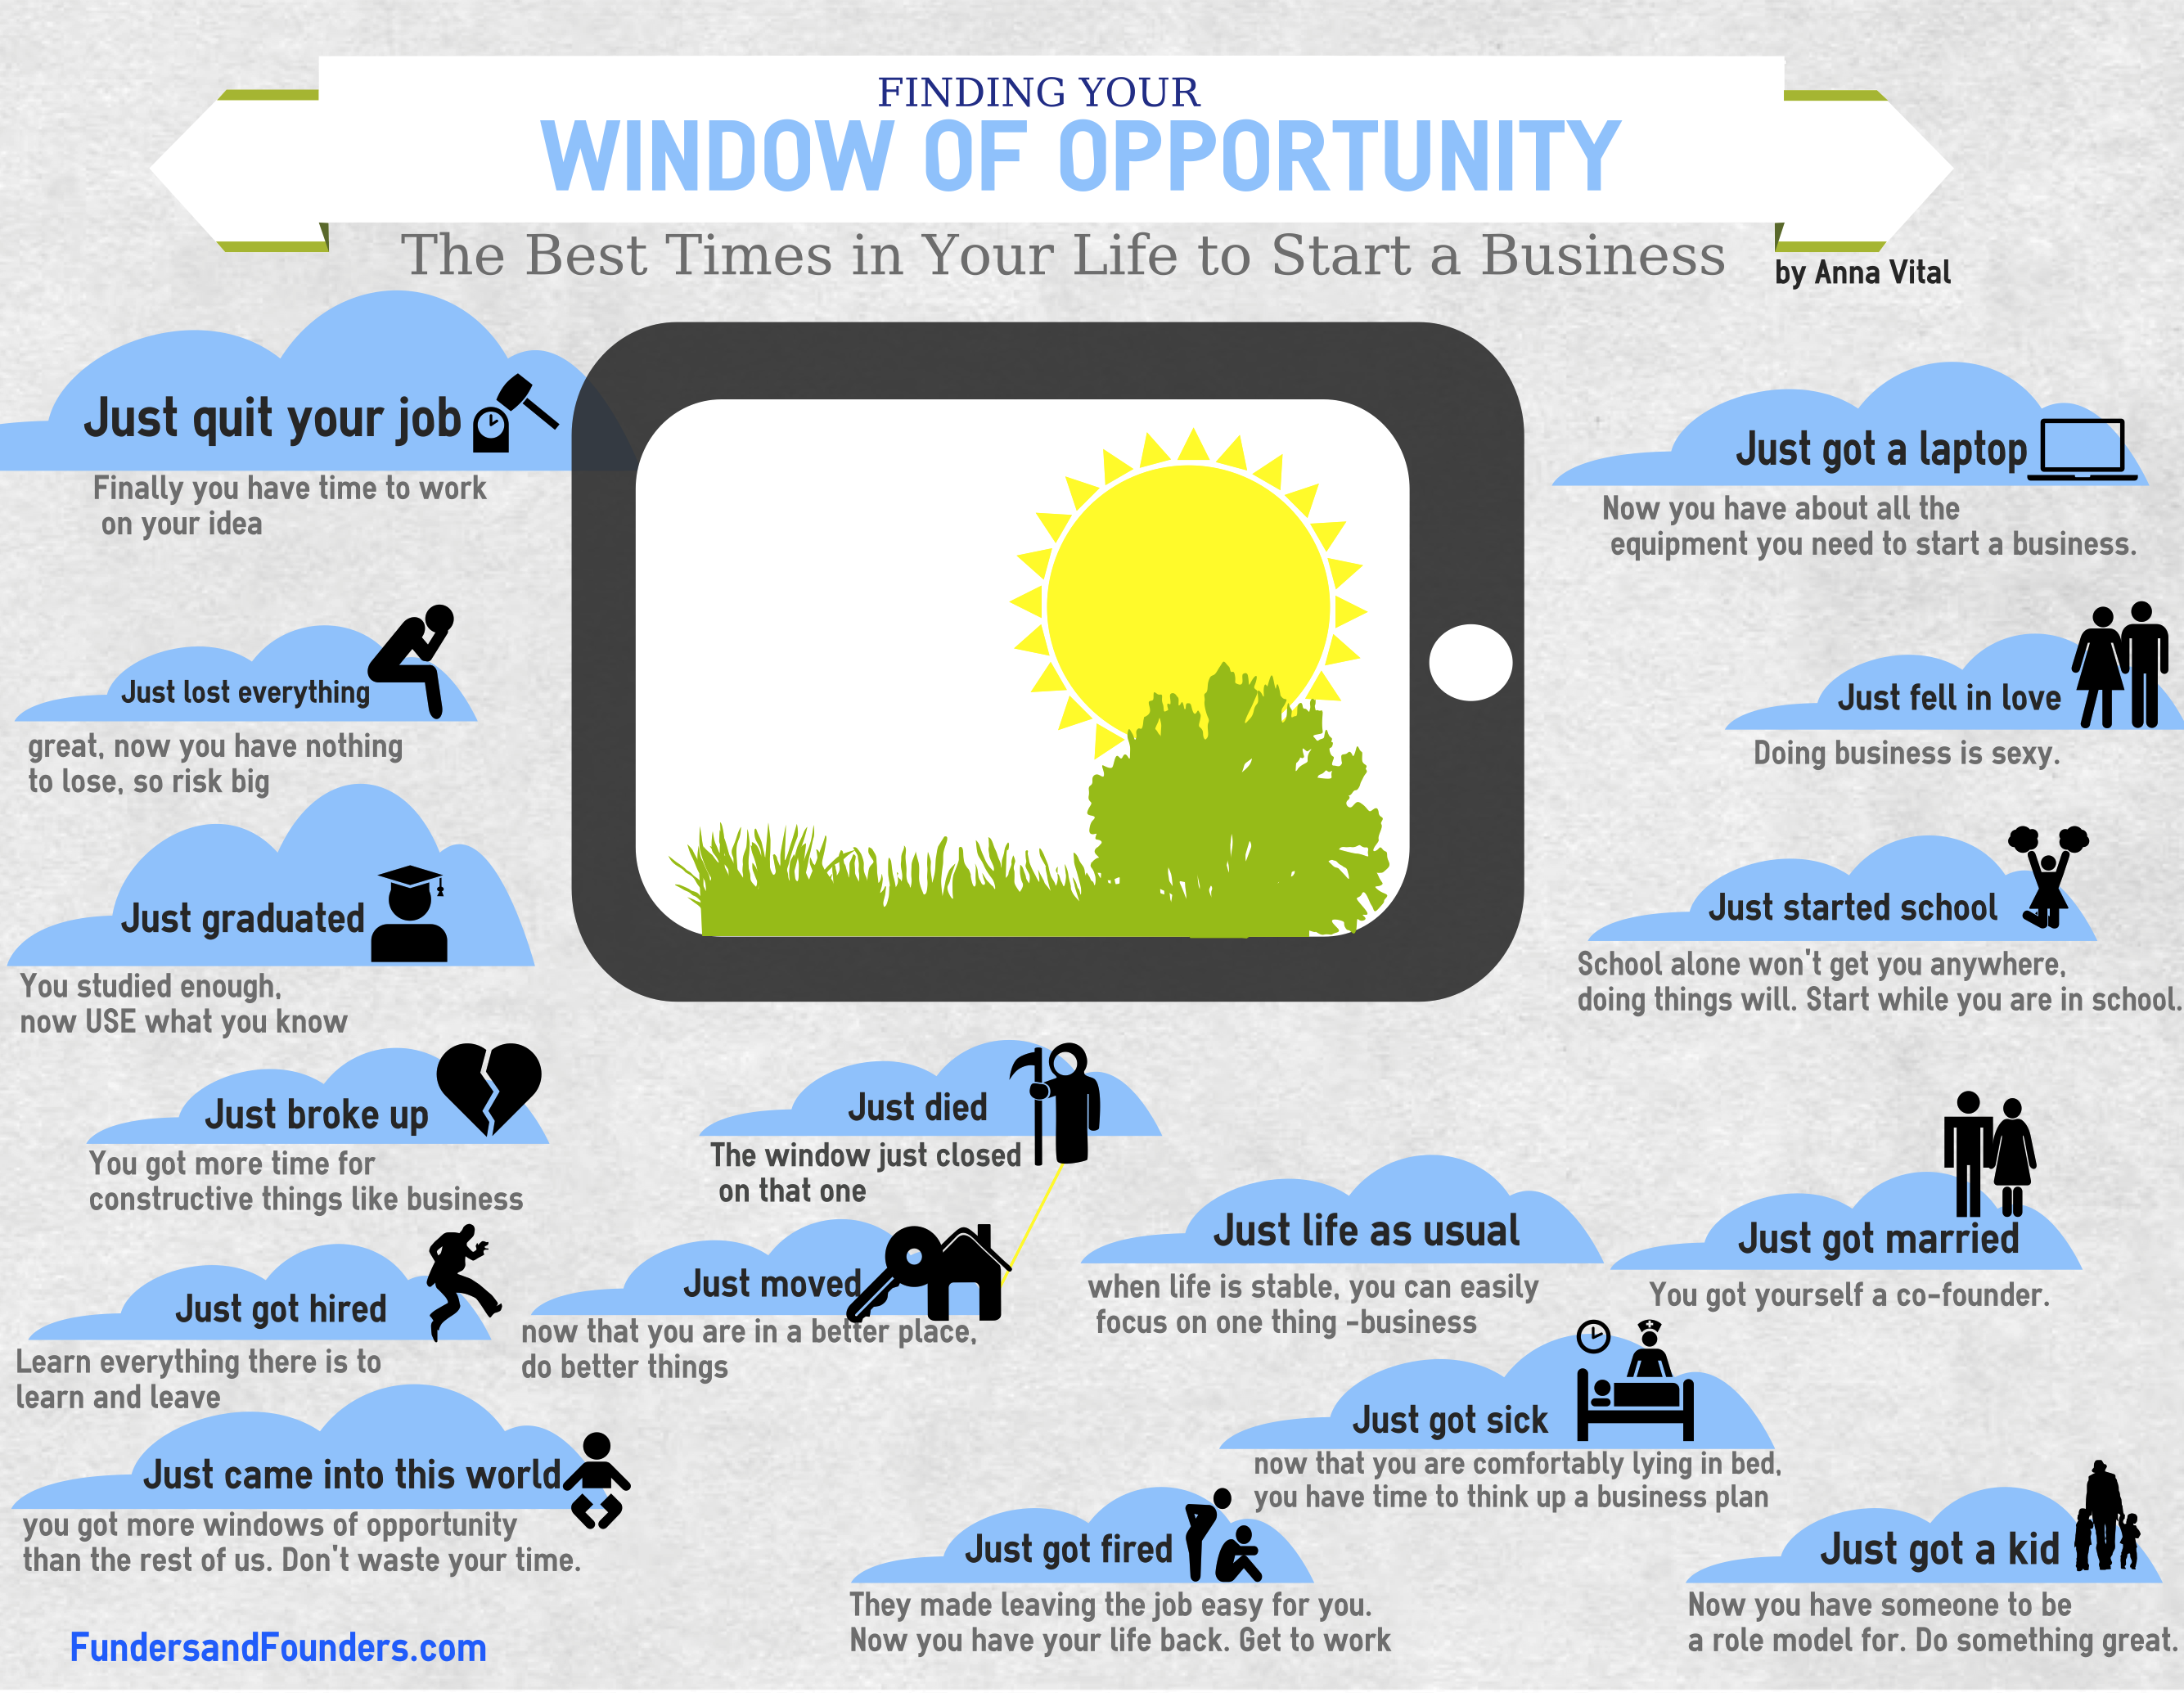 https://assets.entrepreneur.com/blog/finding-your-window-of-opportunity-infographic.png